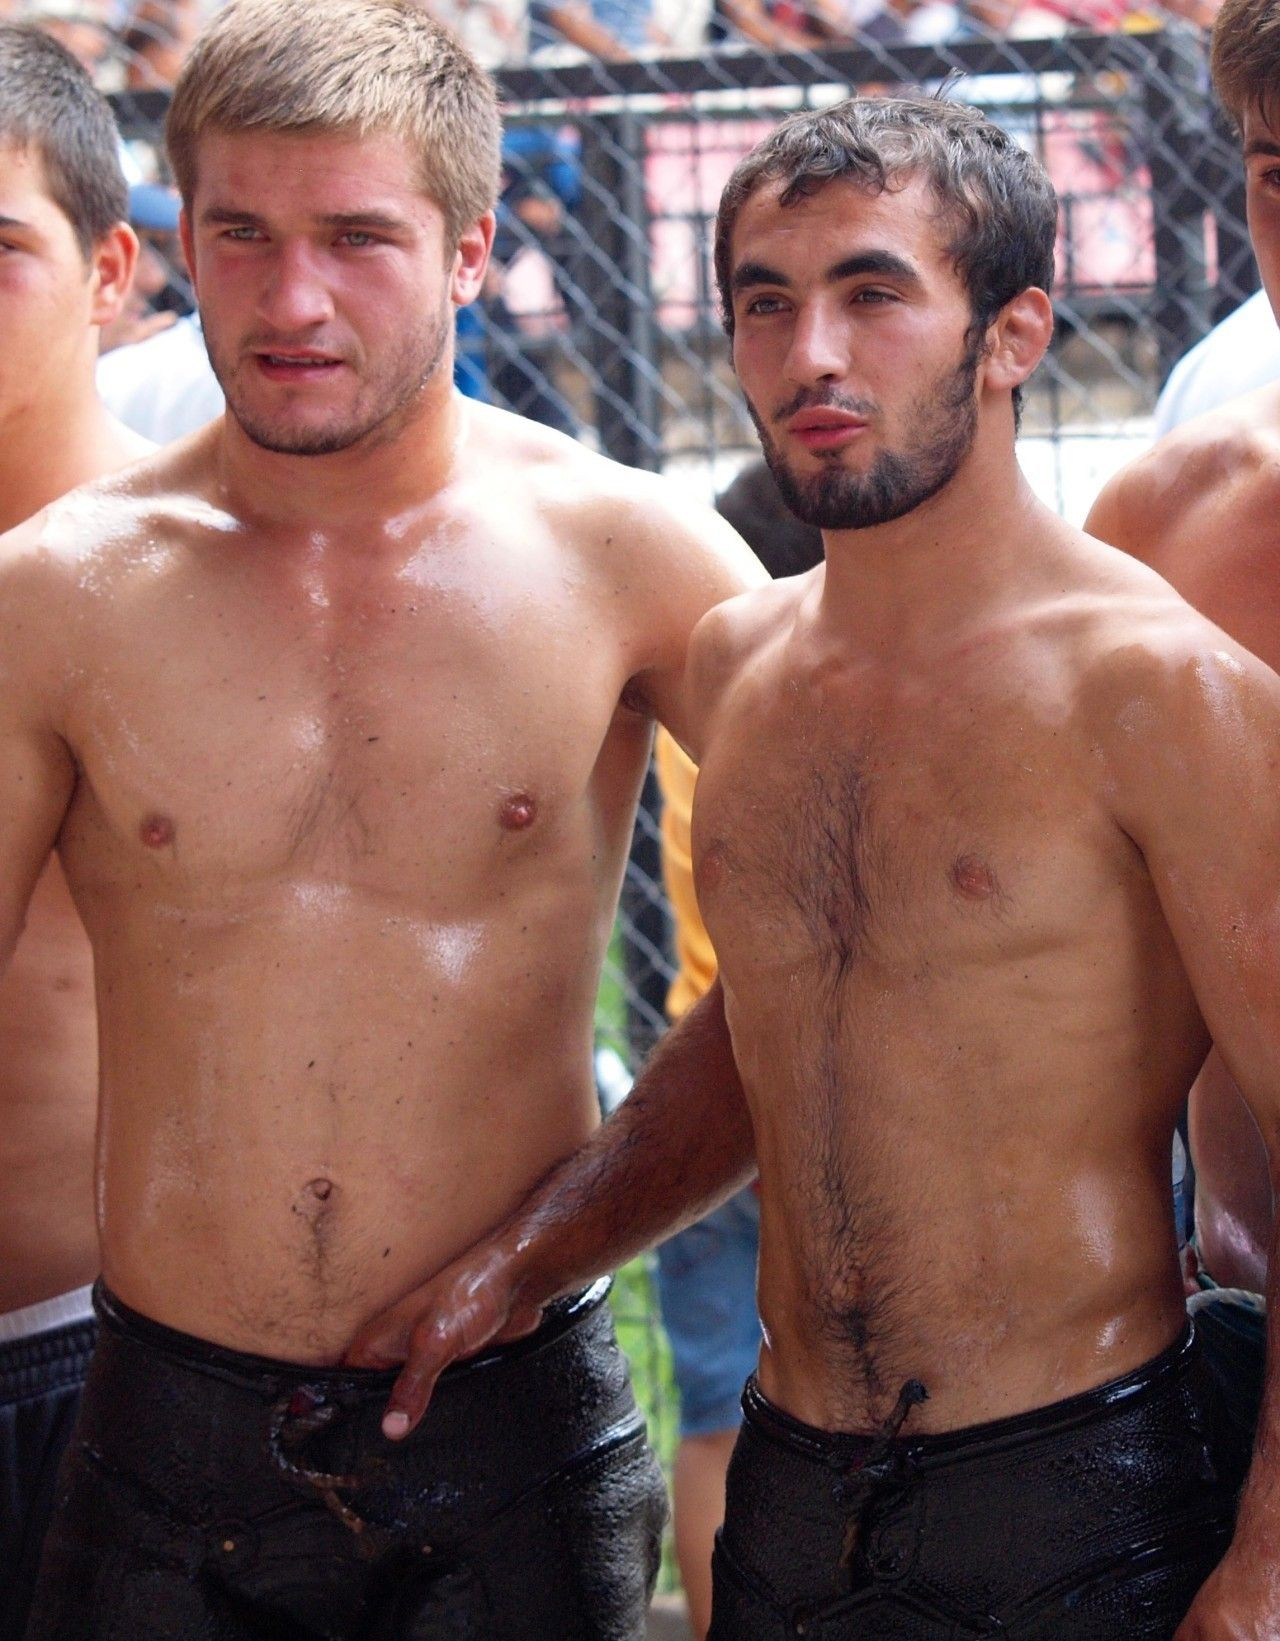 Turkish Oil Wrestlers  Turkish Wrestler  Pinterest -1133